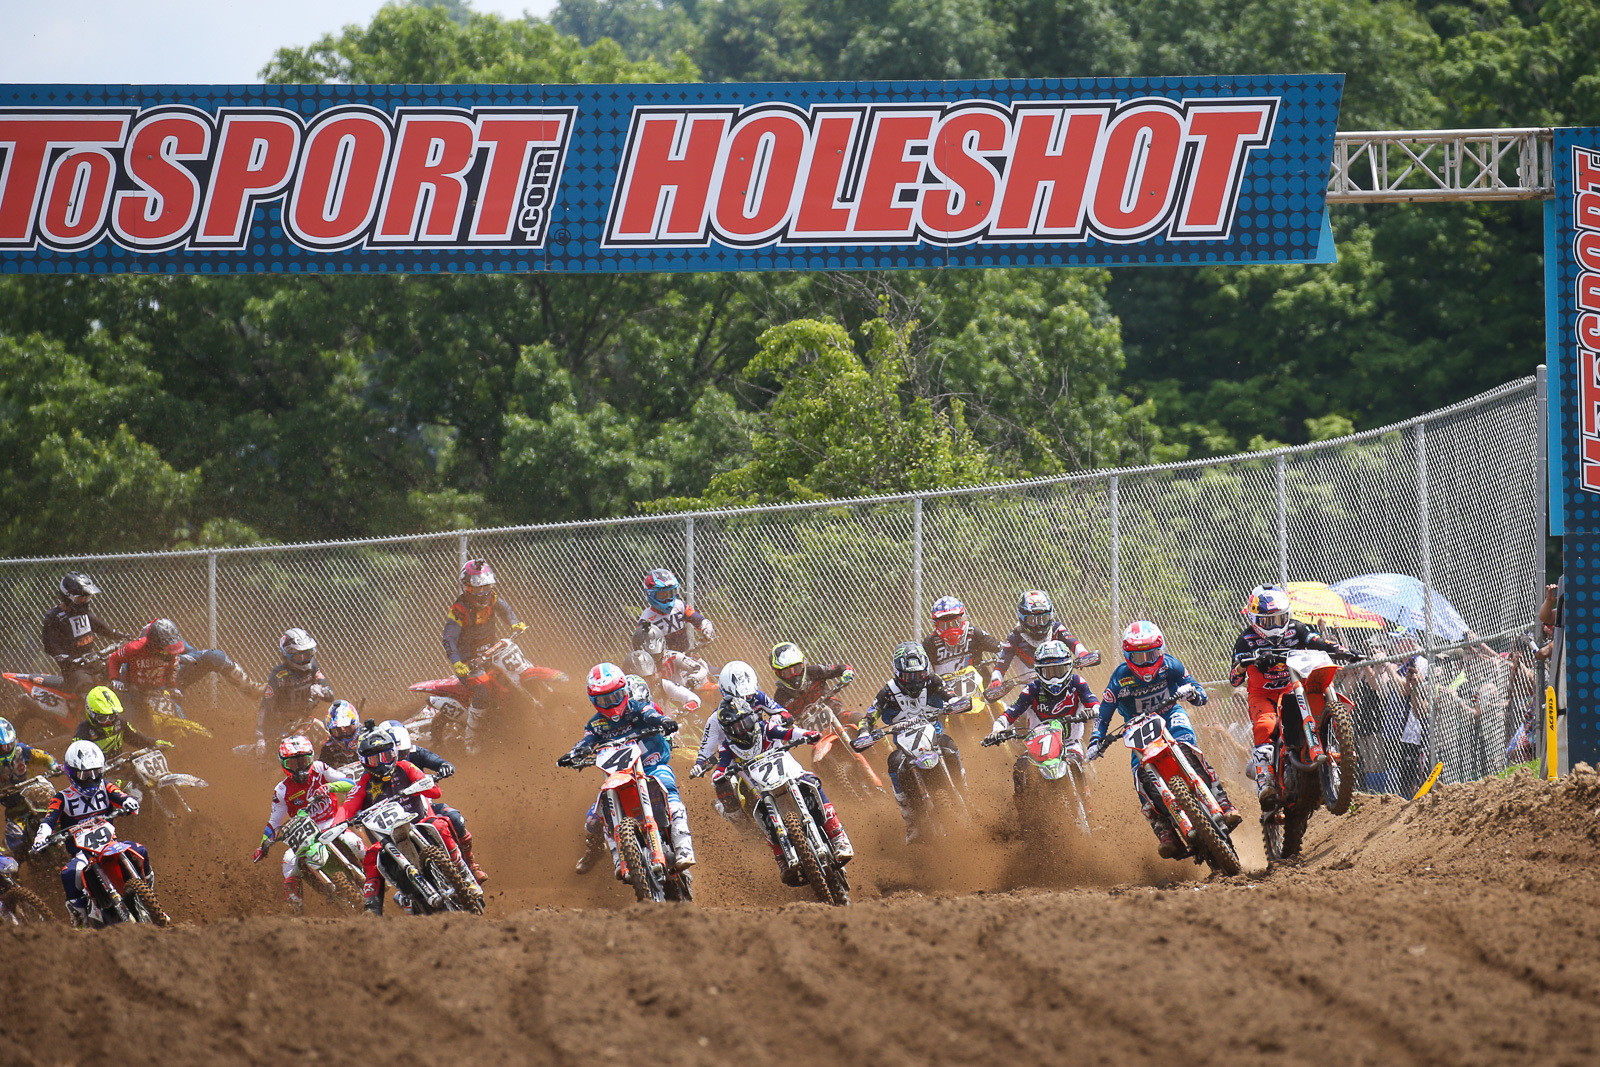 The start was in the same place as it was for the MXoN, rather than the traditional location. Chatting with Eli Tomac after the race, he said he actually prefers this version to the old one. The 450s ran first this week, and as the snarling pack of 450s exited the first turn, Cooper Webb was running up front. Check the bank that he's riding on. That's definitely living on the edge.